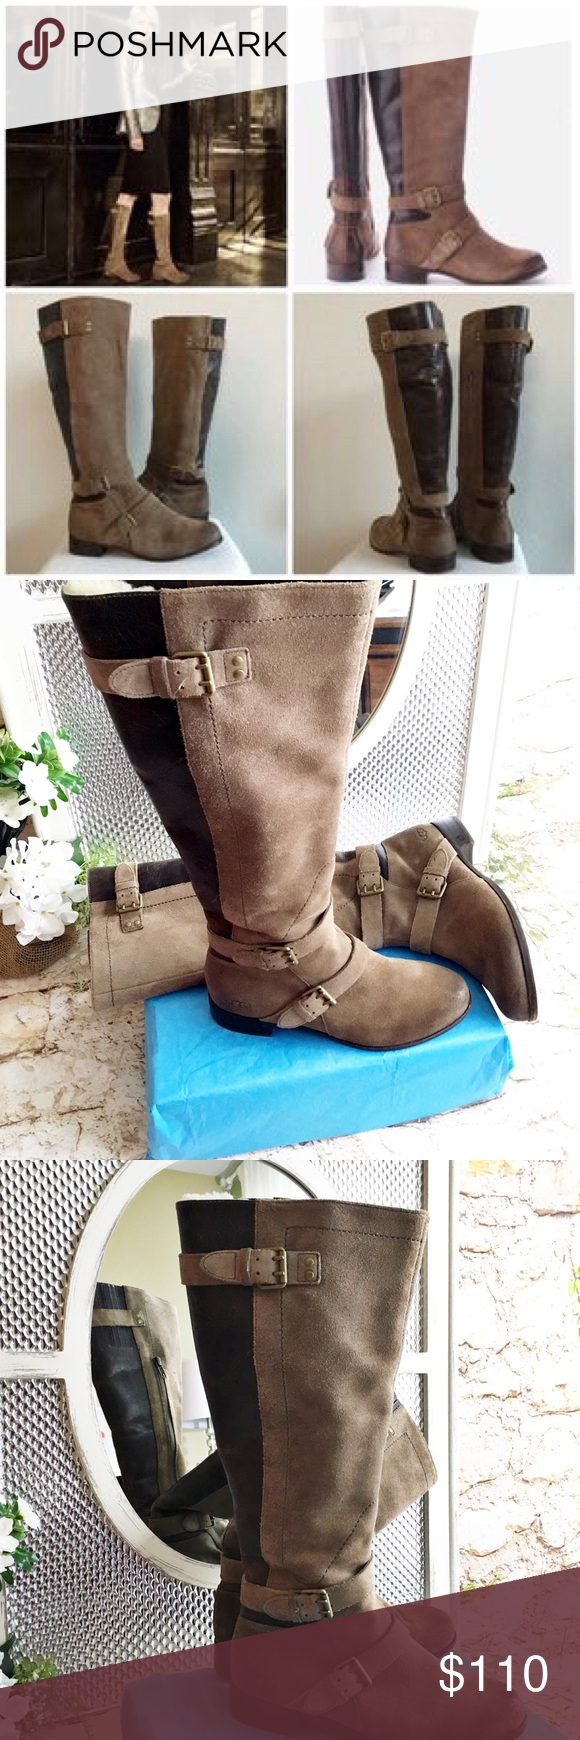 9703f819cec UGG Australia Cydnee fawn Riding Boot, Size 6 Boot is a unique pair ...